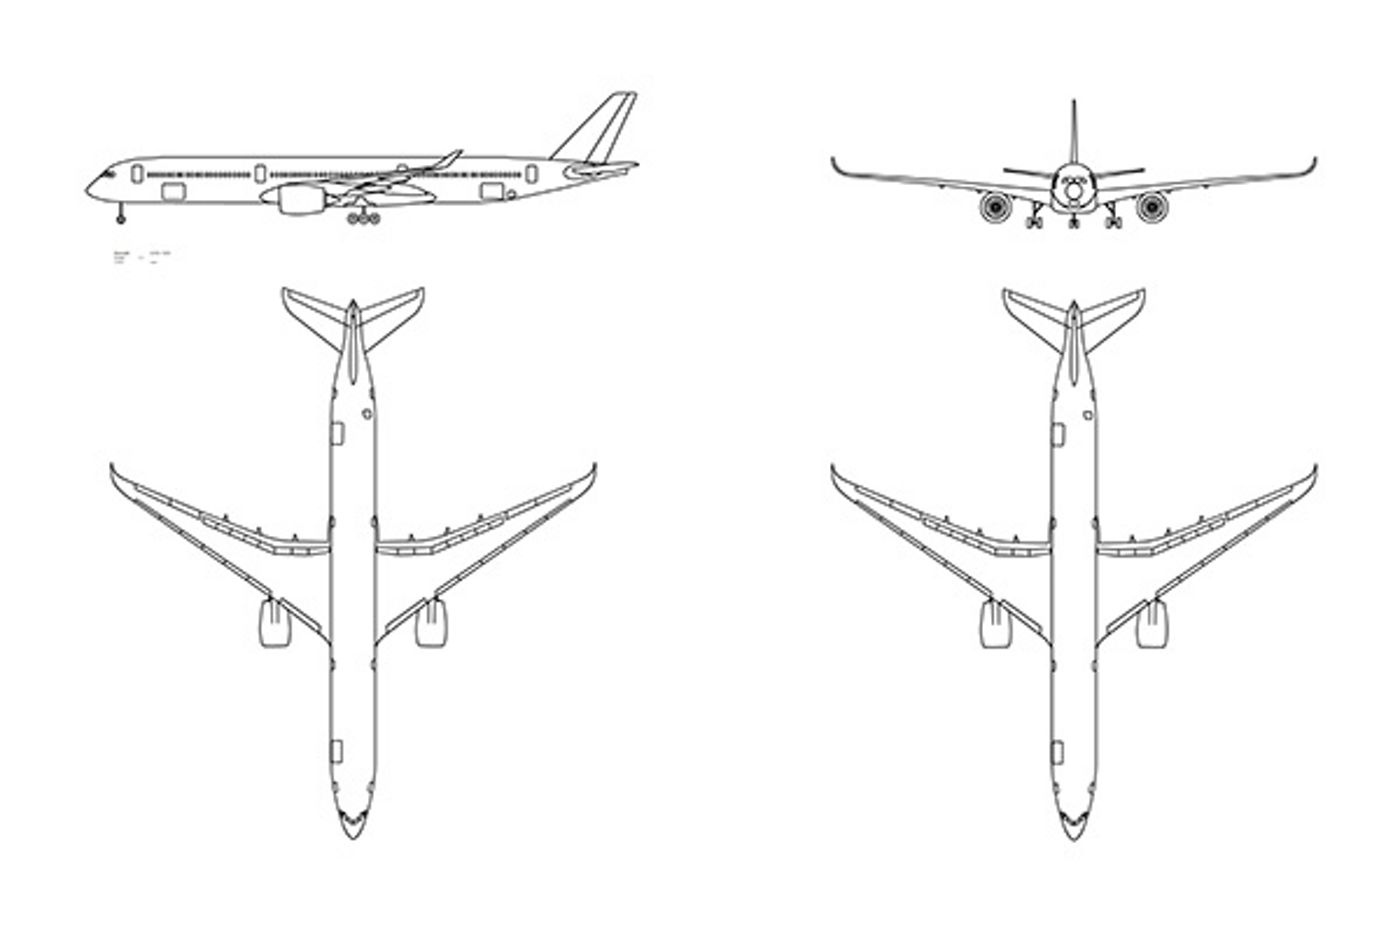 AutoCAD 3-view aircraft drawings